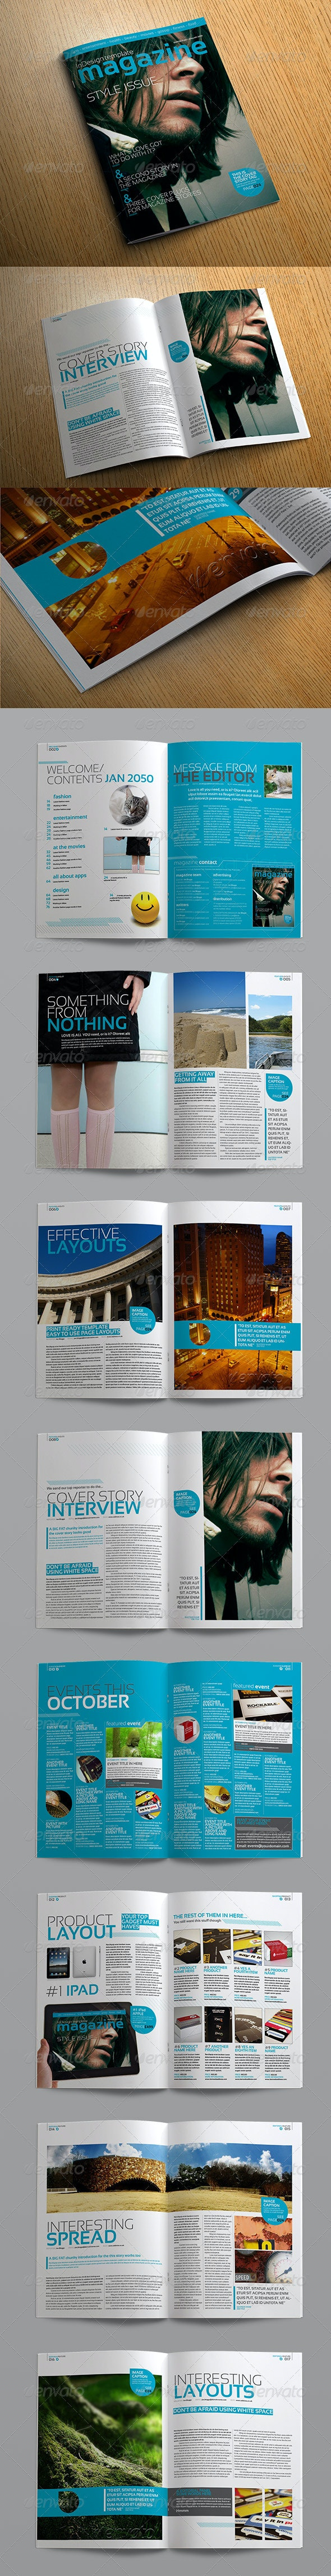 Stylish InDesign Magazine Template - Magazines Print Templates